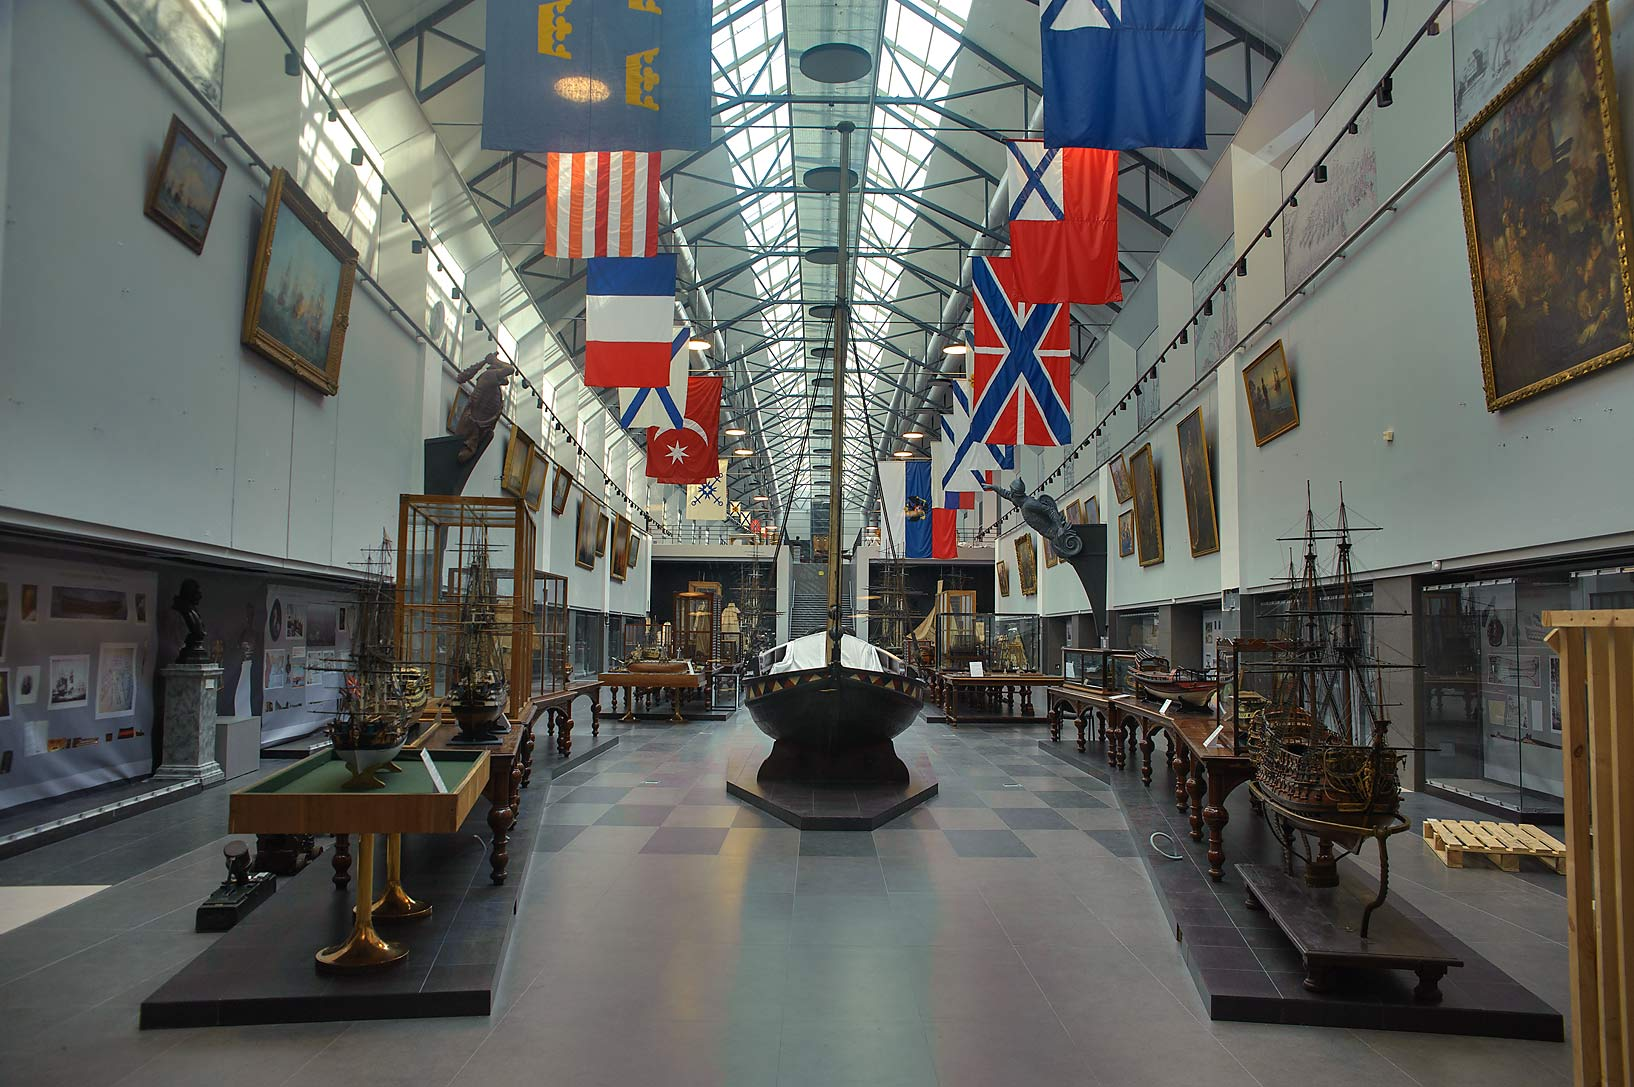 Expositions of Naval Museum. St.Petersburg, Russia